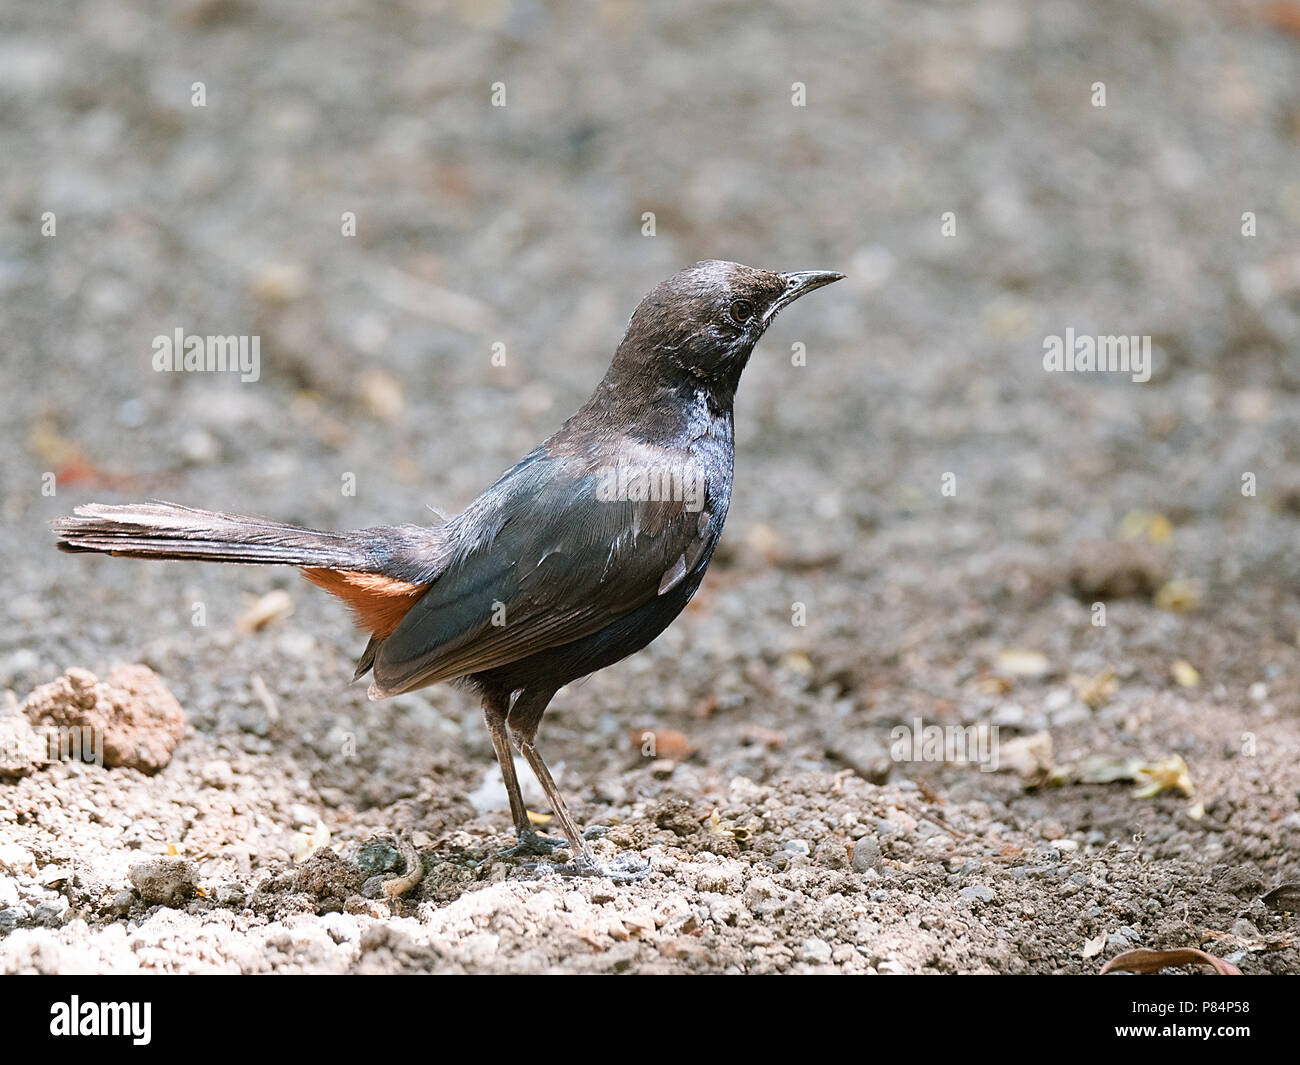 Indian Robin Bird Closeup with blurred background - Stock Image